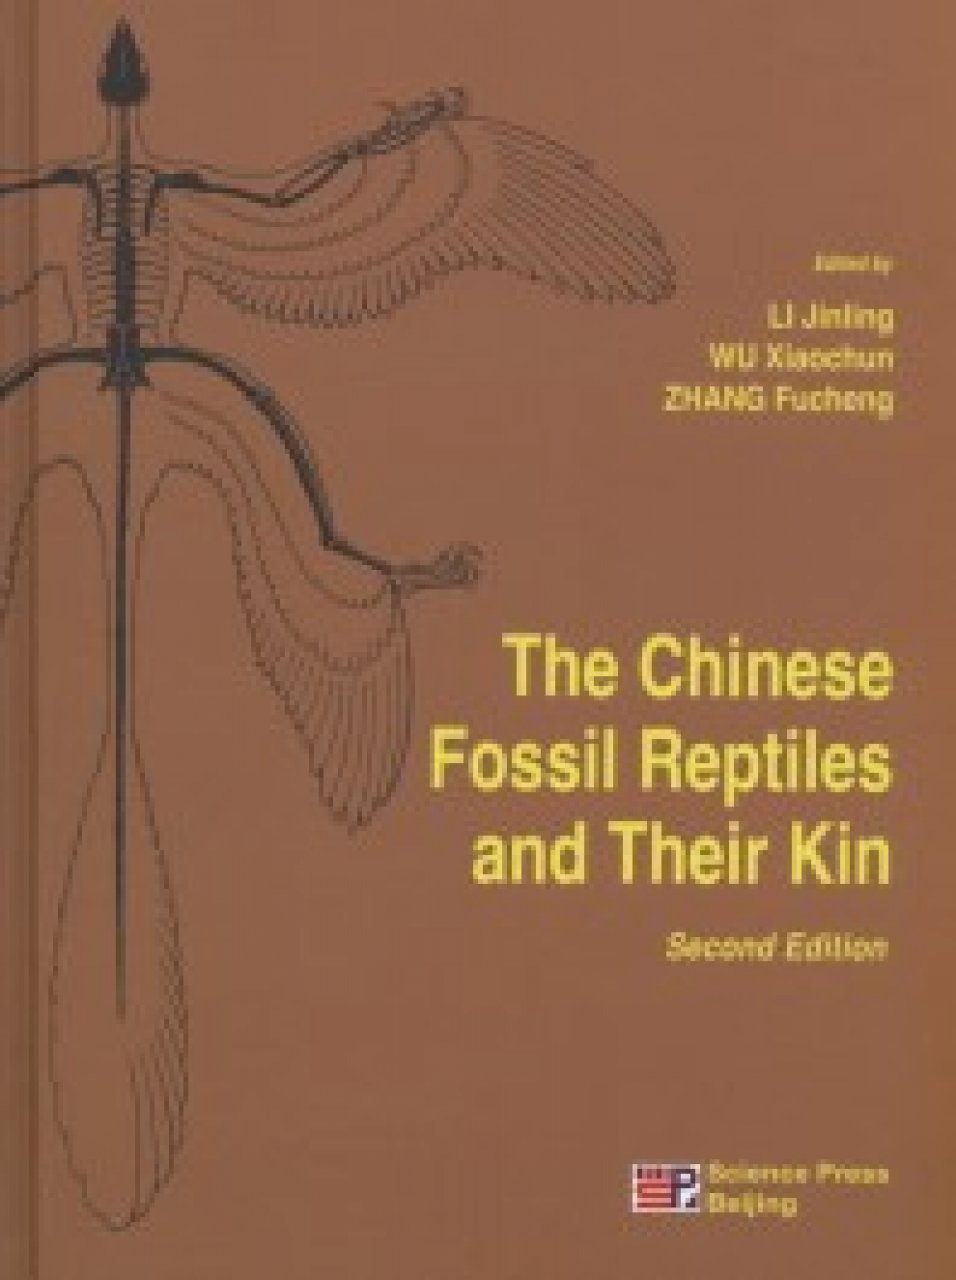 The Chinese Fossil Reptiles and Their Kins